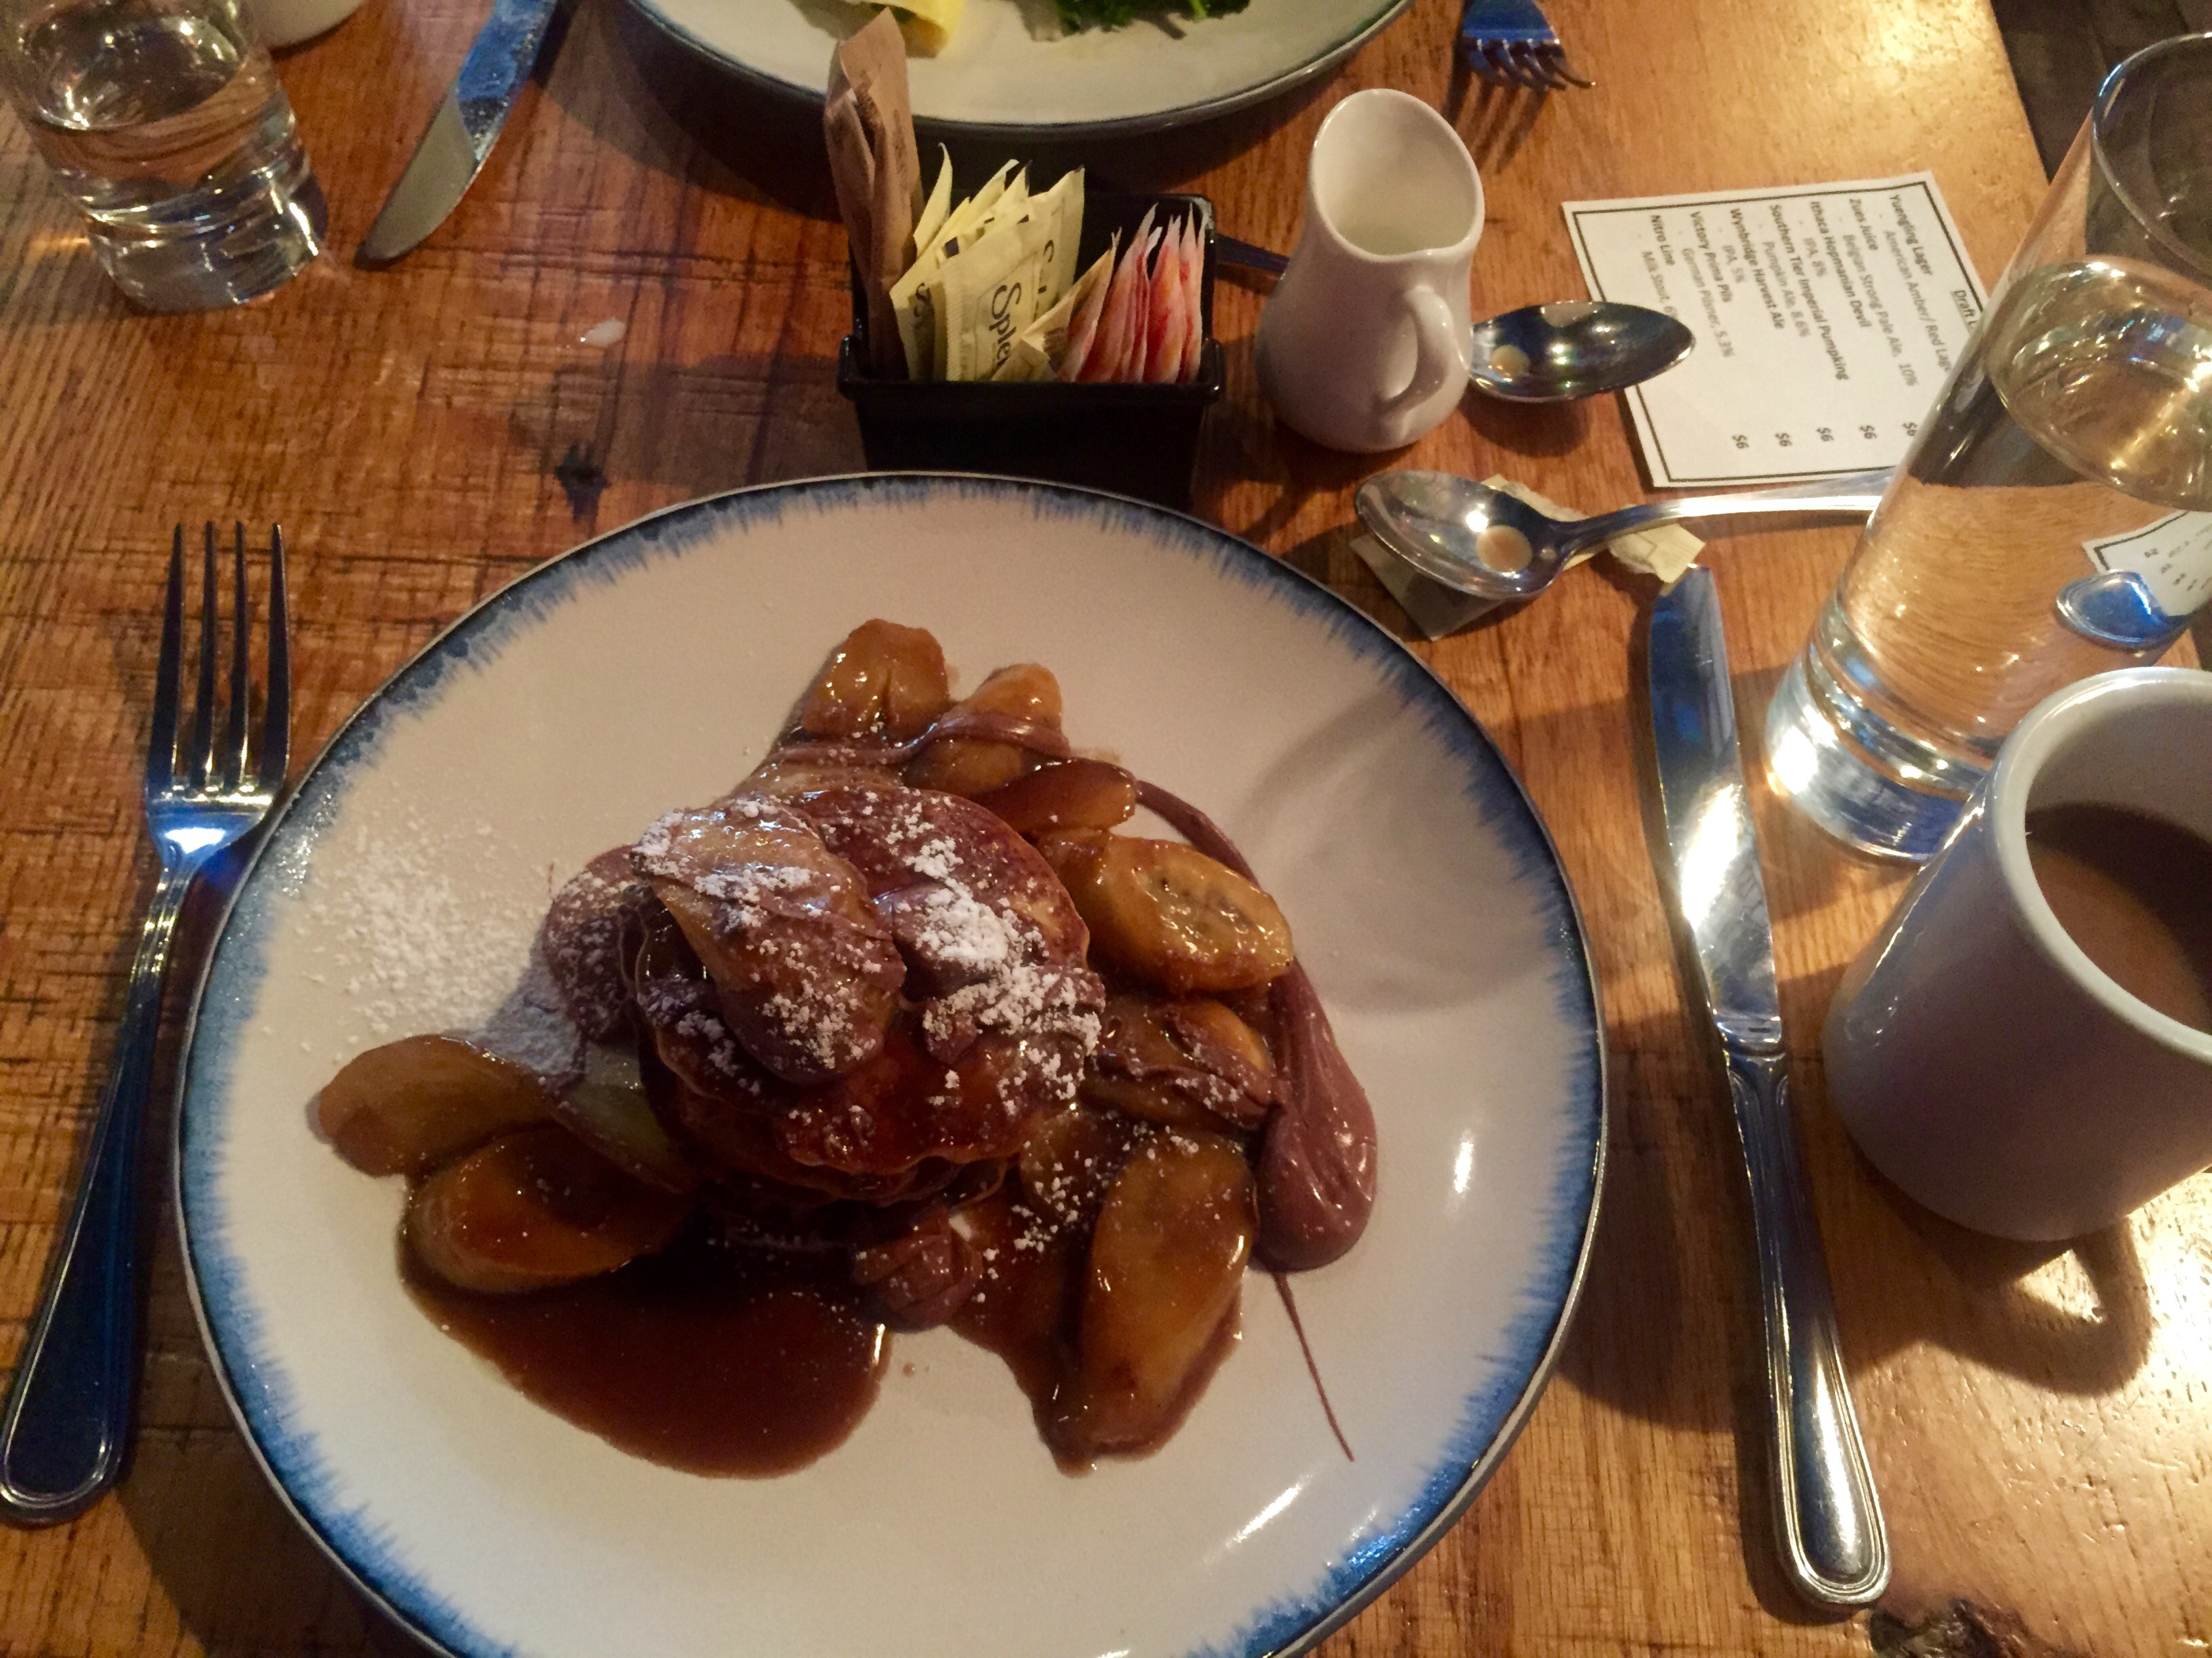 opa-table-with-pancakes